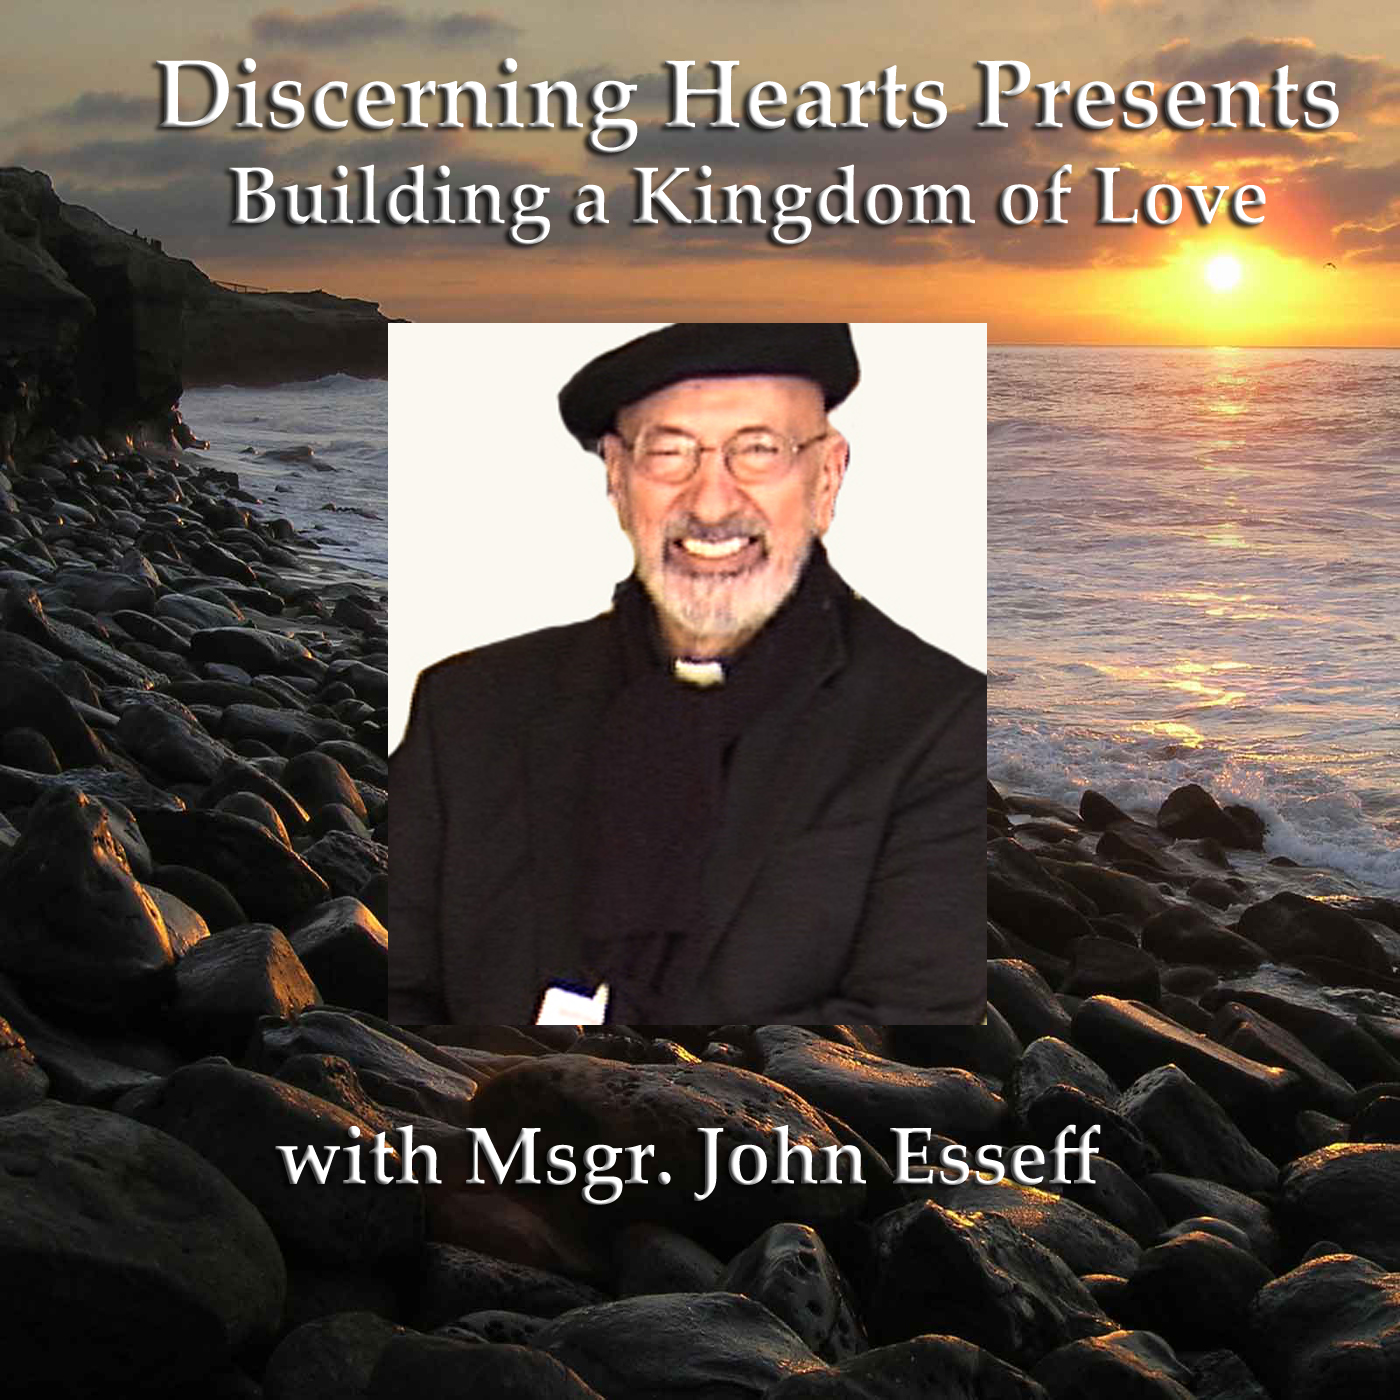 Msgr. John Esseff - Discerning Hearts Catholic Podcasts